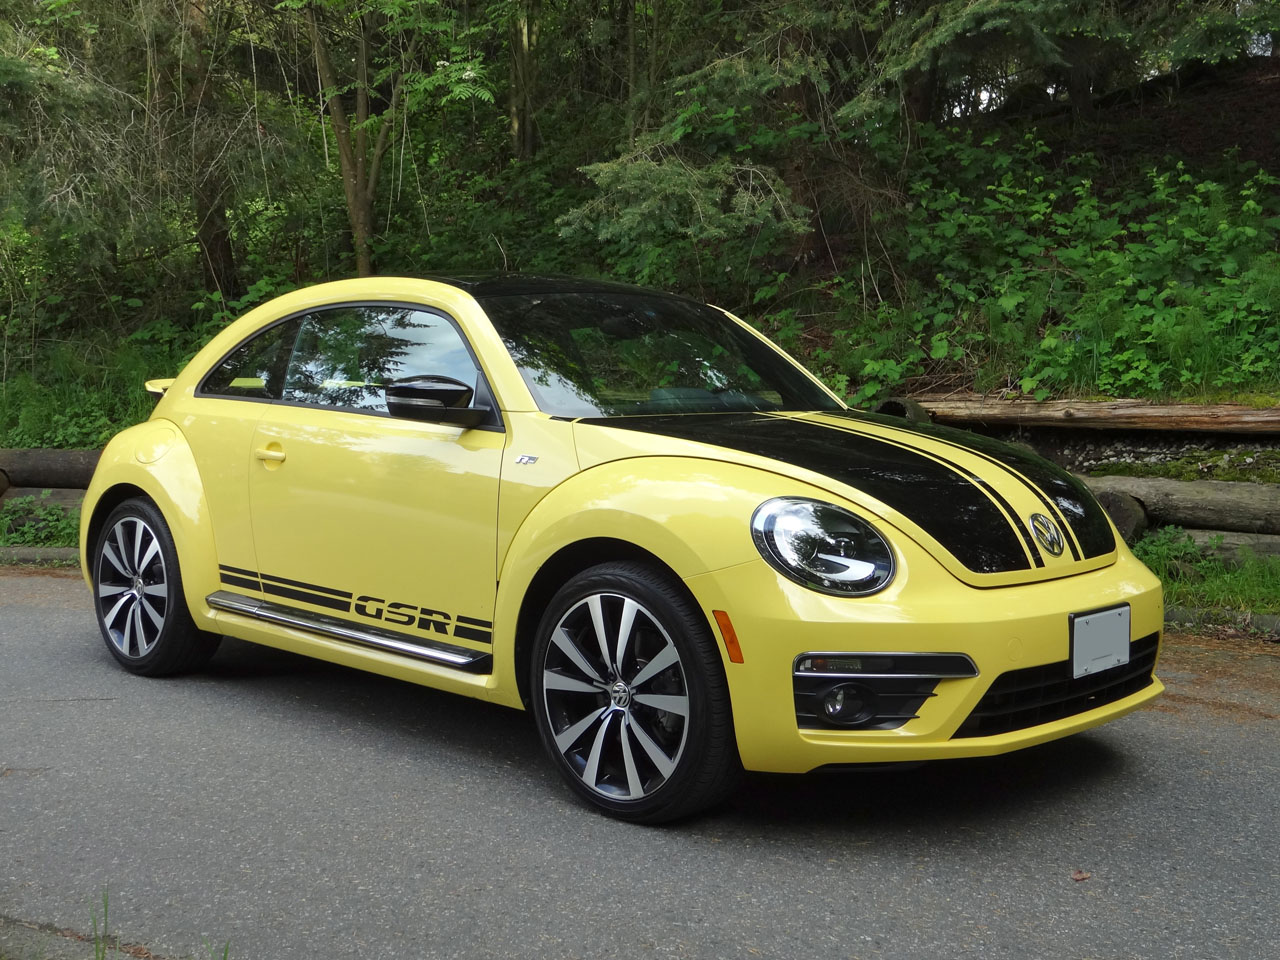 quarter beetle test review motor three dune yellow first in motion front convertible cars volkswagen trend